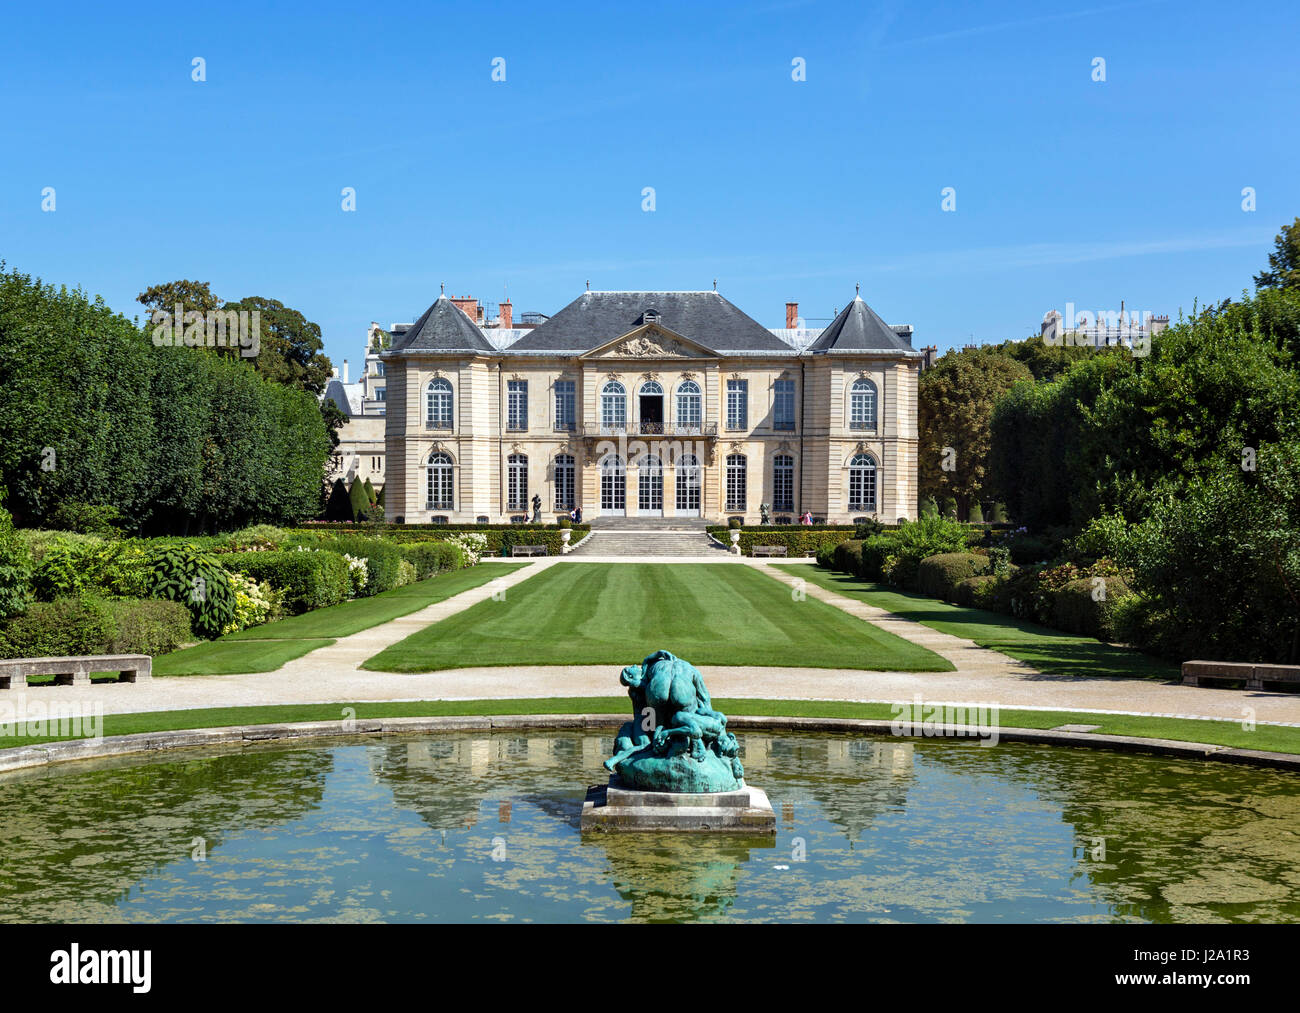 The Musee Rodin, Paris, France - Stock Image